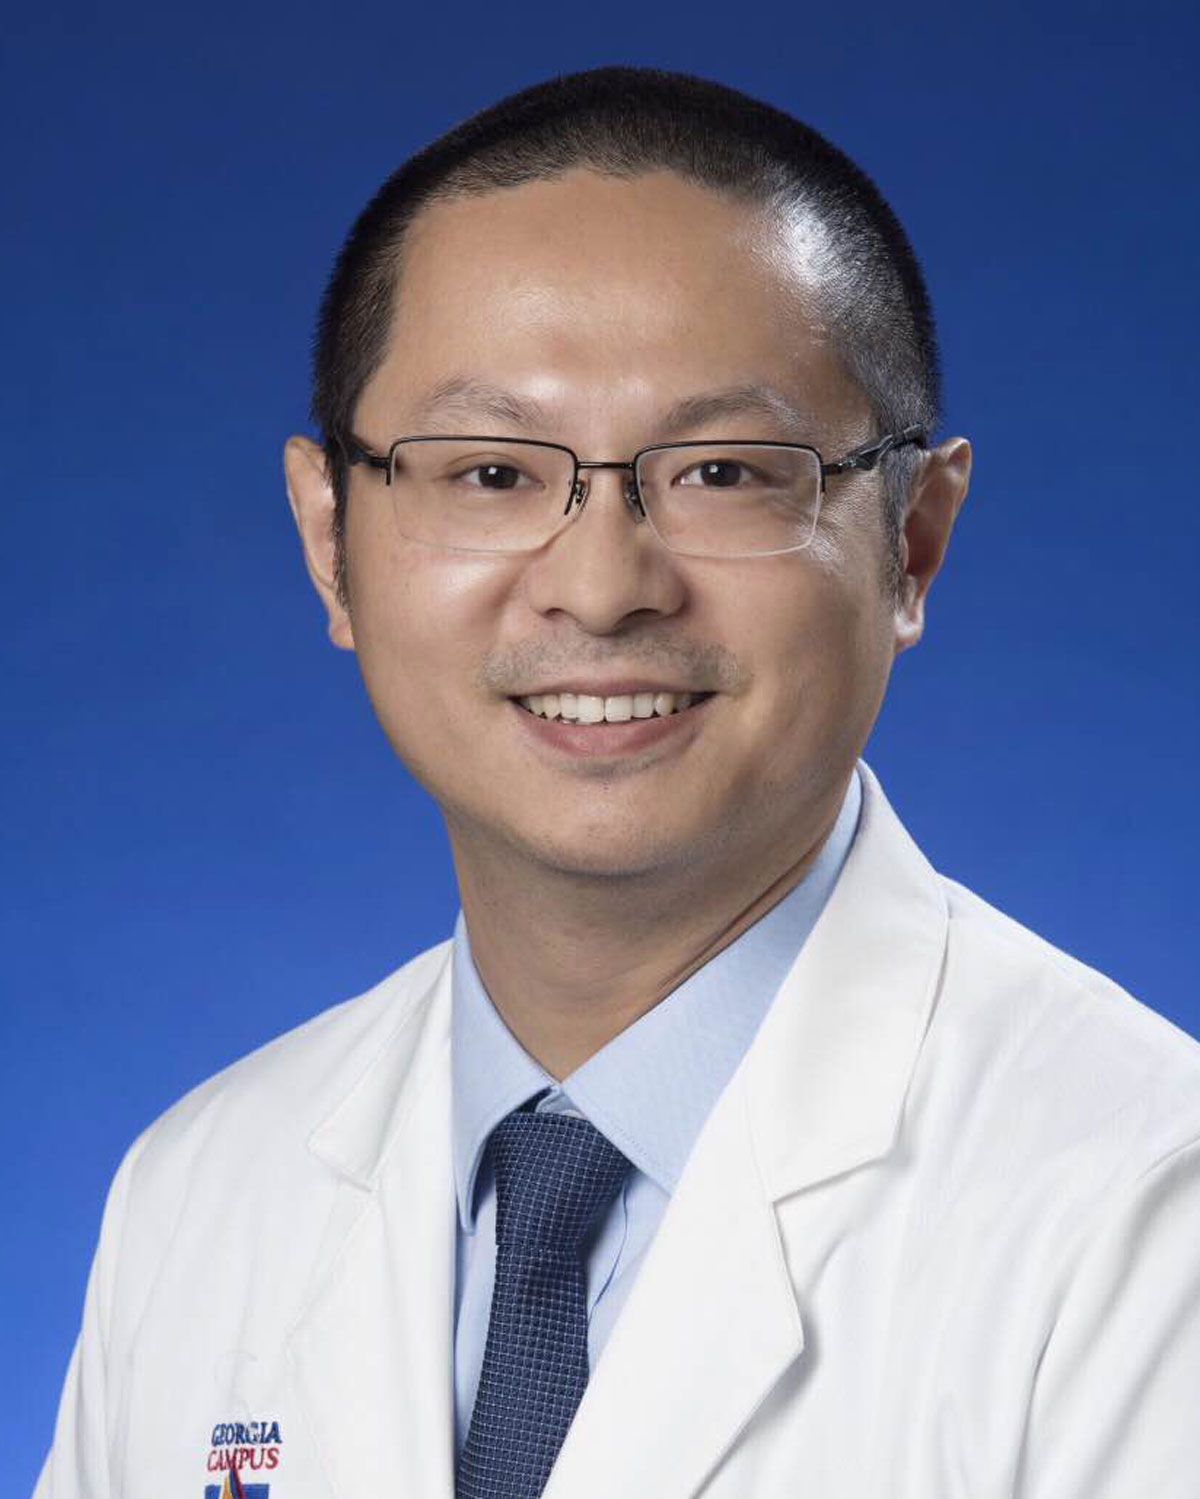 Headshot photograph of Hua Ling, PharmD